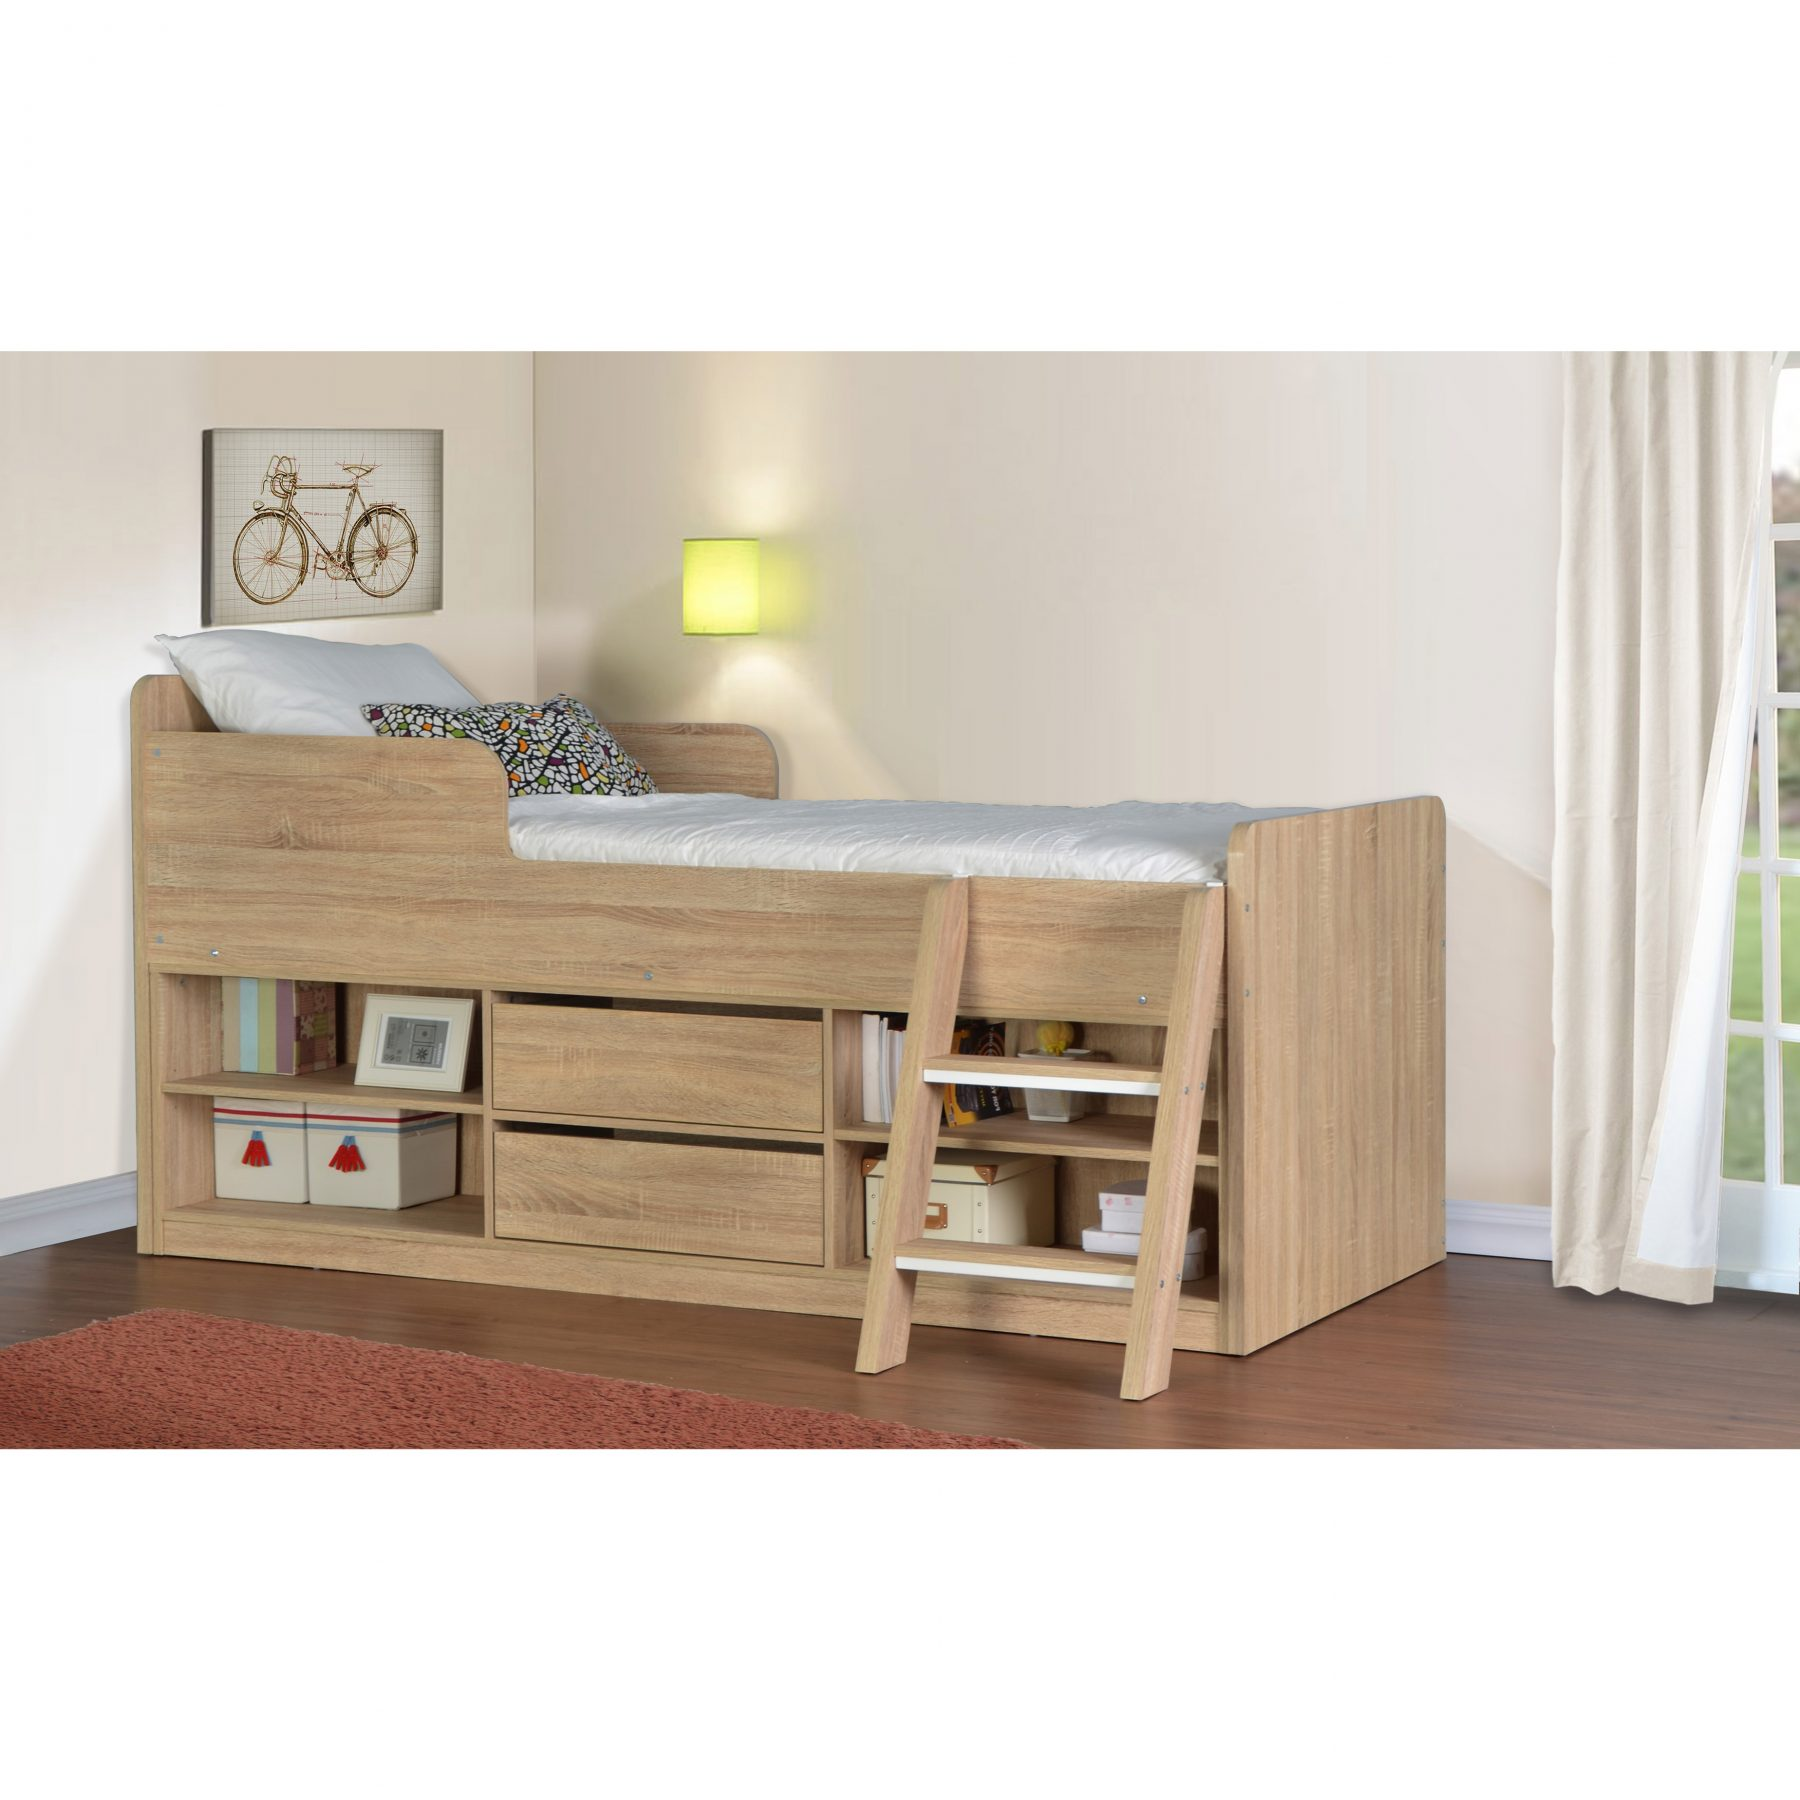 Picture of: Buy Children S Mid Sleeper Beds At Fads Home Style Kids Bedroom